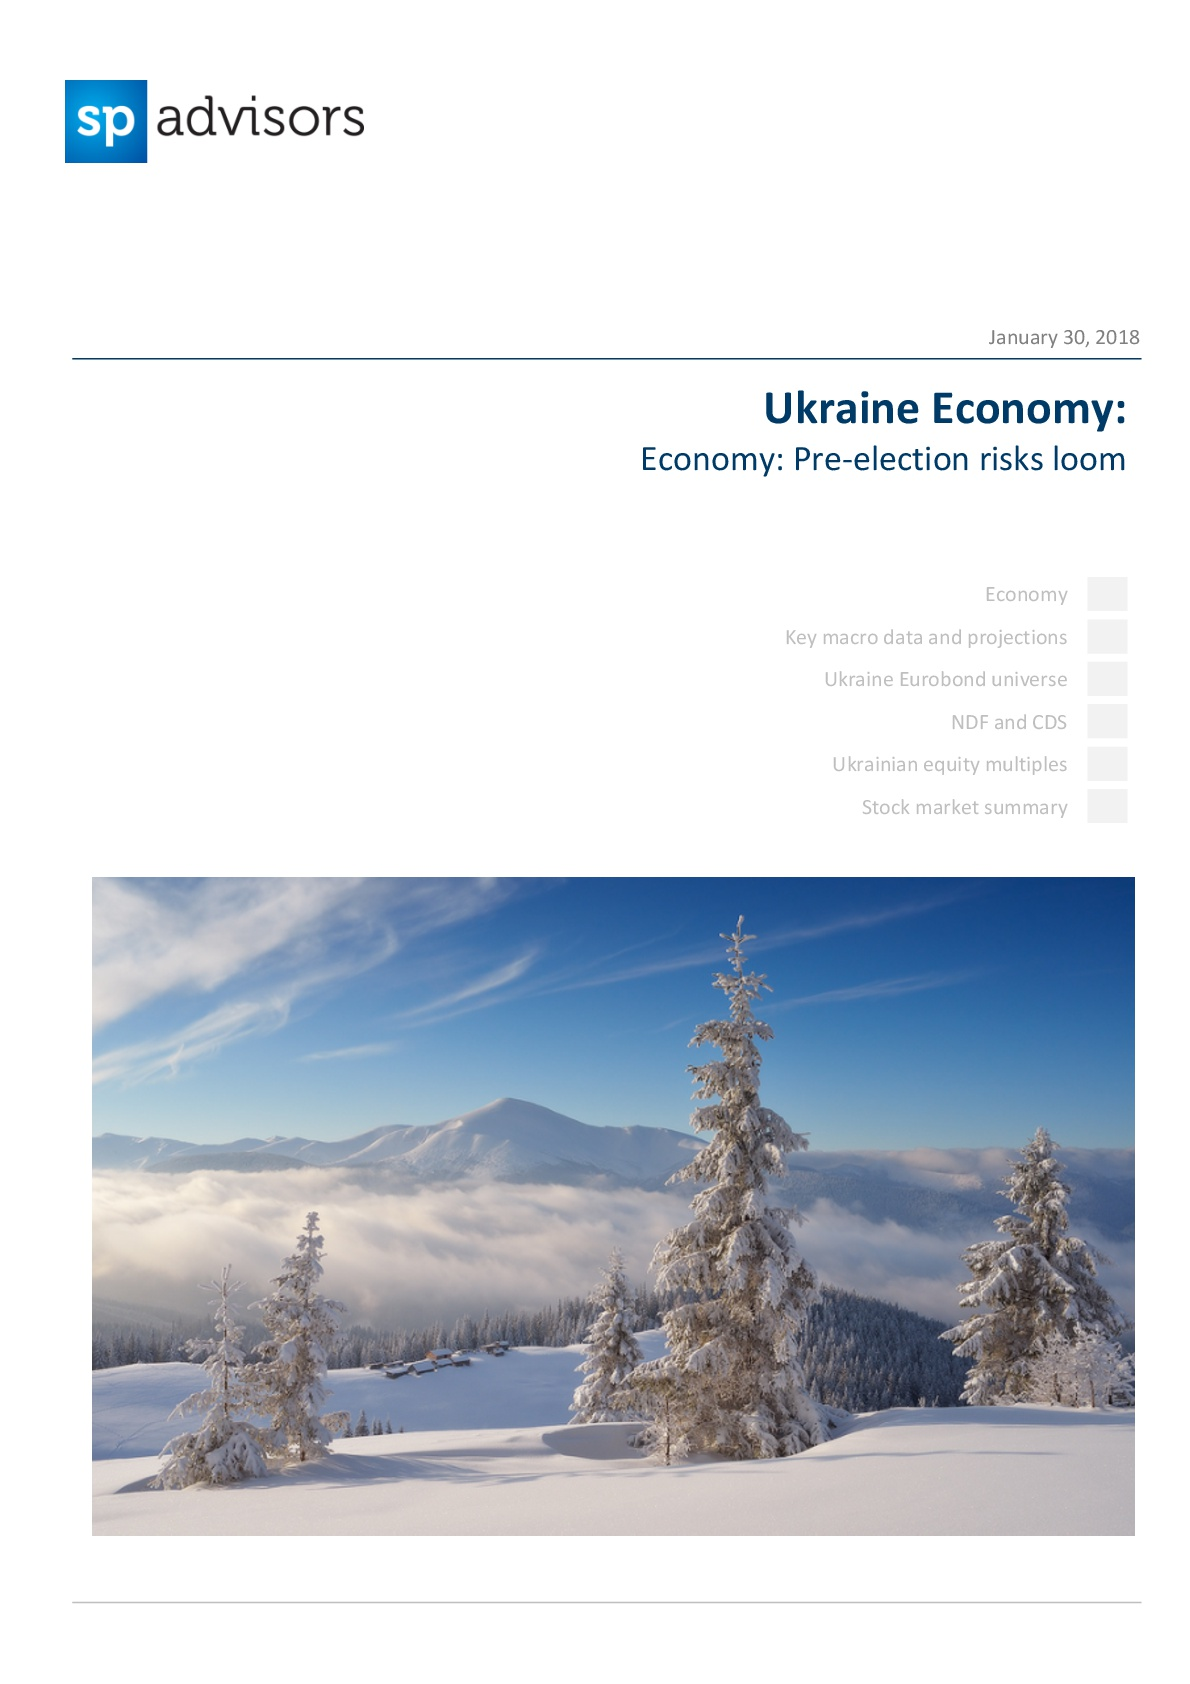 Ukraine Economy: Pre-election risks loom. January 30, 2018